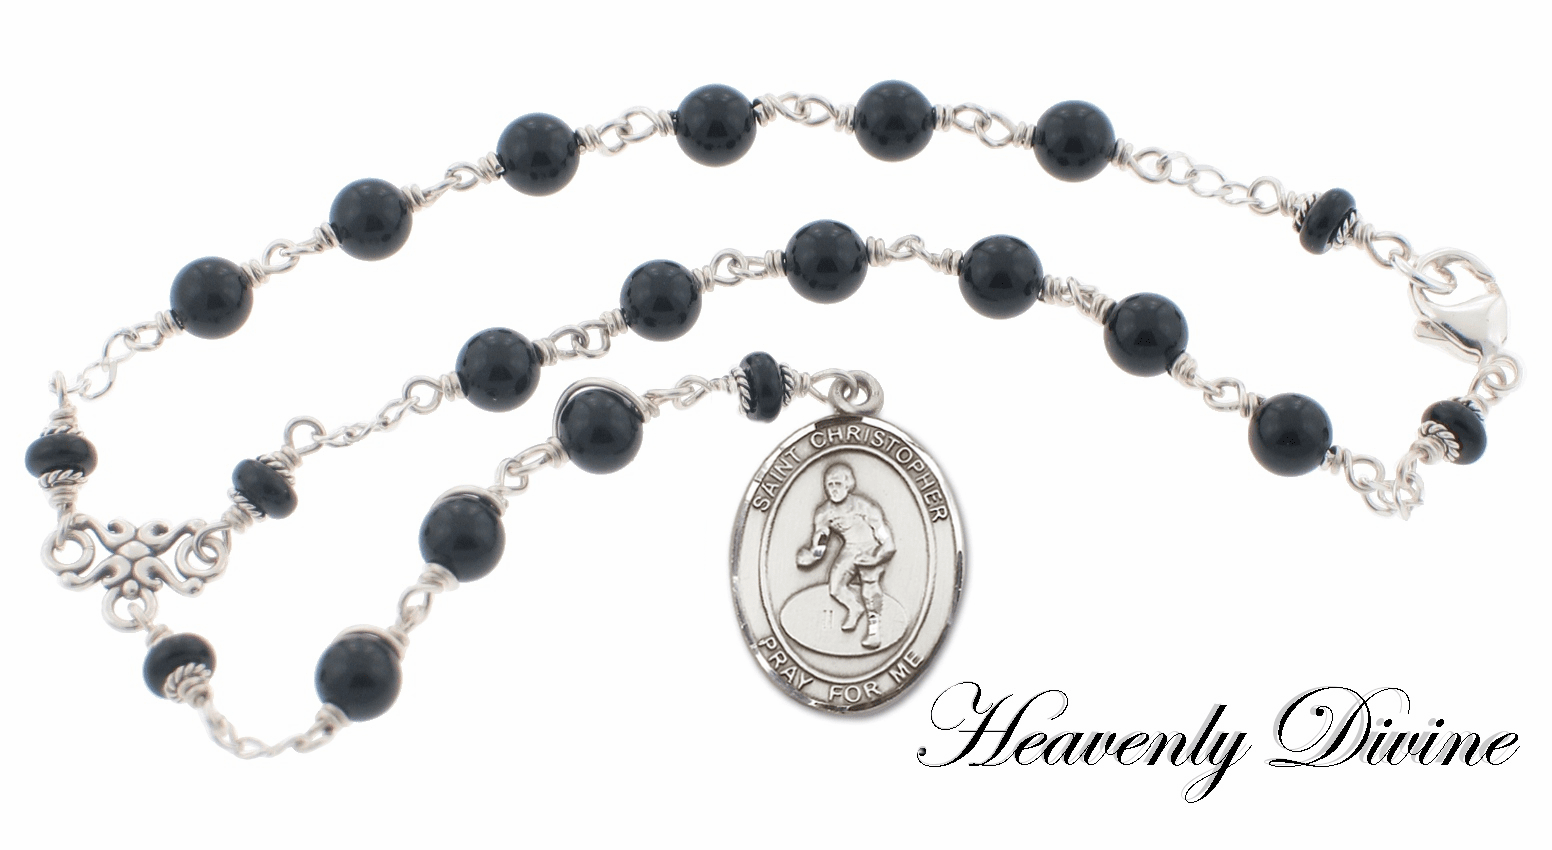 Handmade St. Christopher Black Onyx Wrestling Auto Chaplet by Heavenly Divine